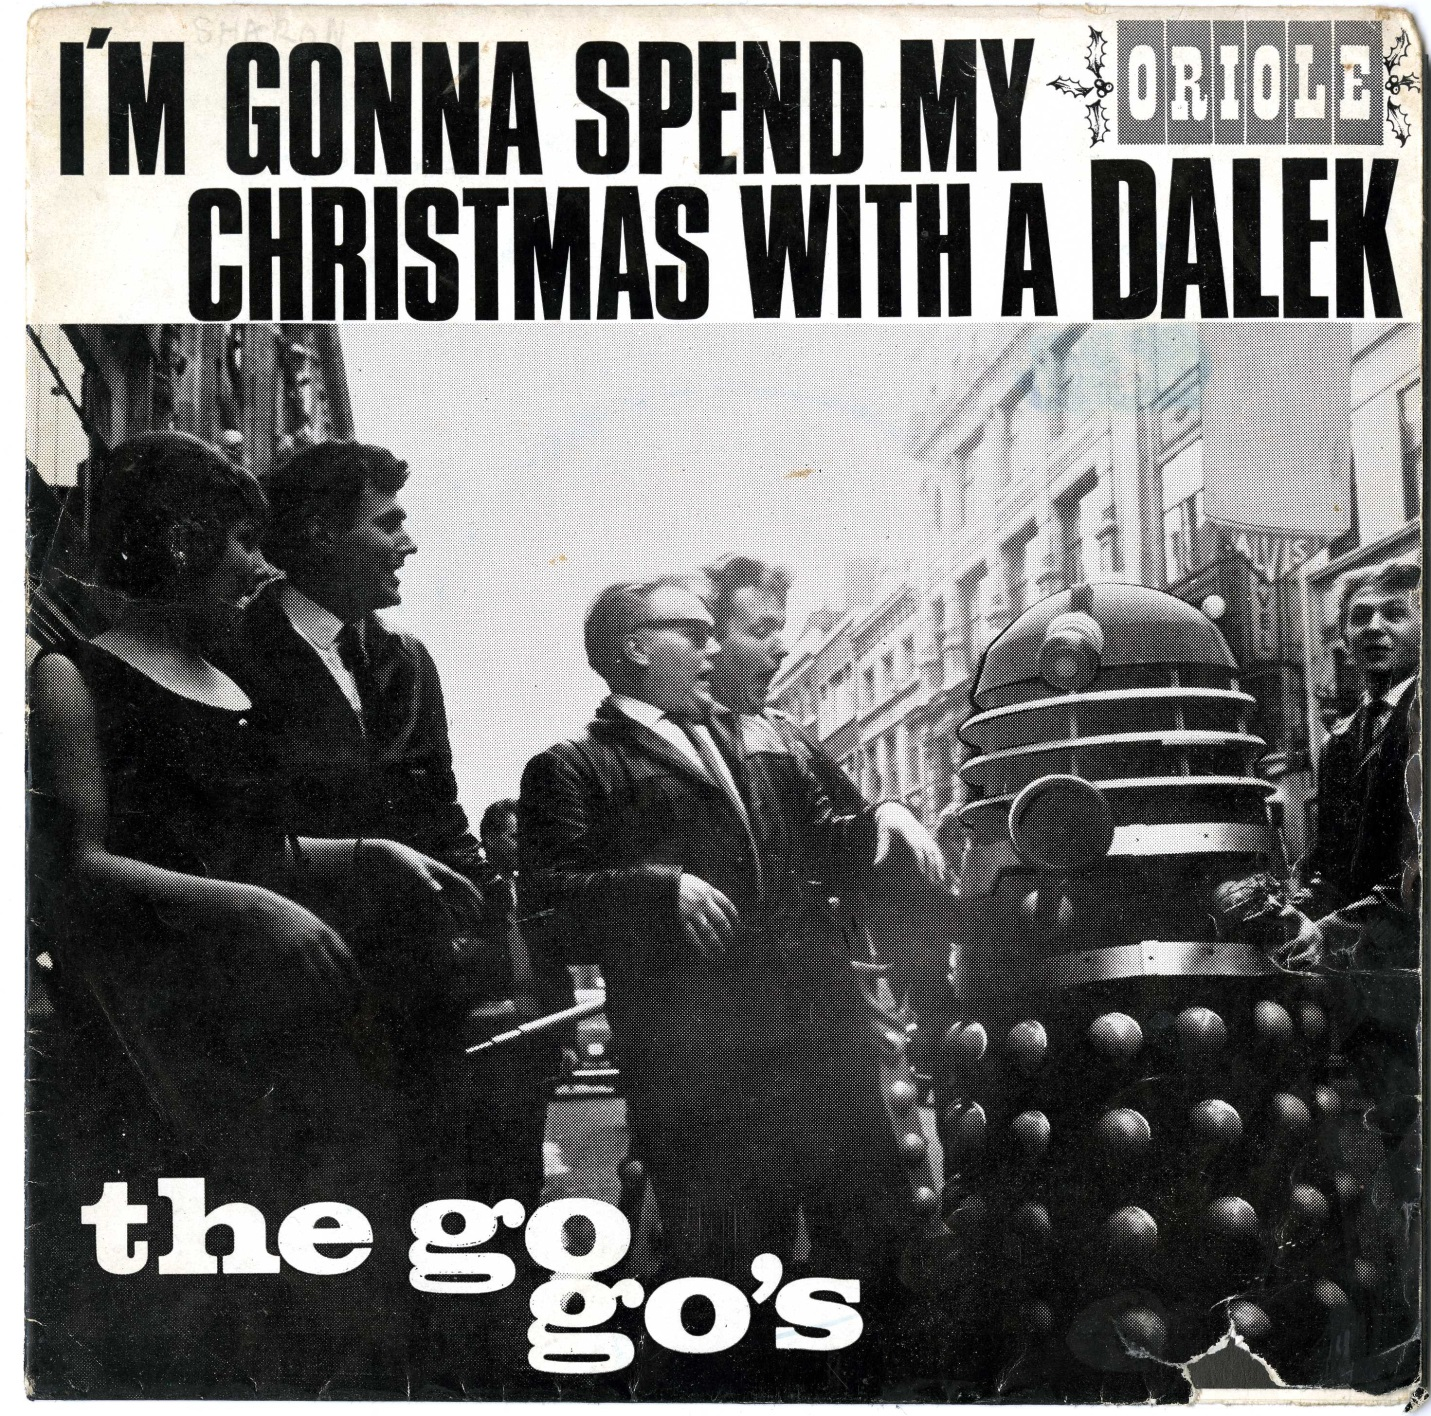 The Go-Go's, I'm Gonna Spend My Christmas With A Dalek, Oriole 45-RPM in picture sleeve